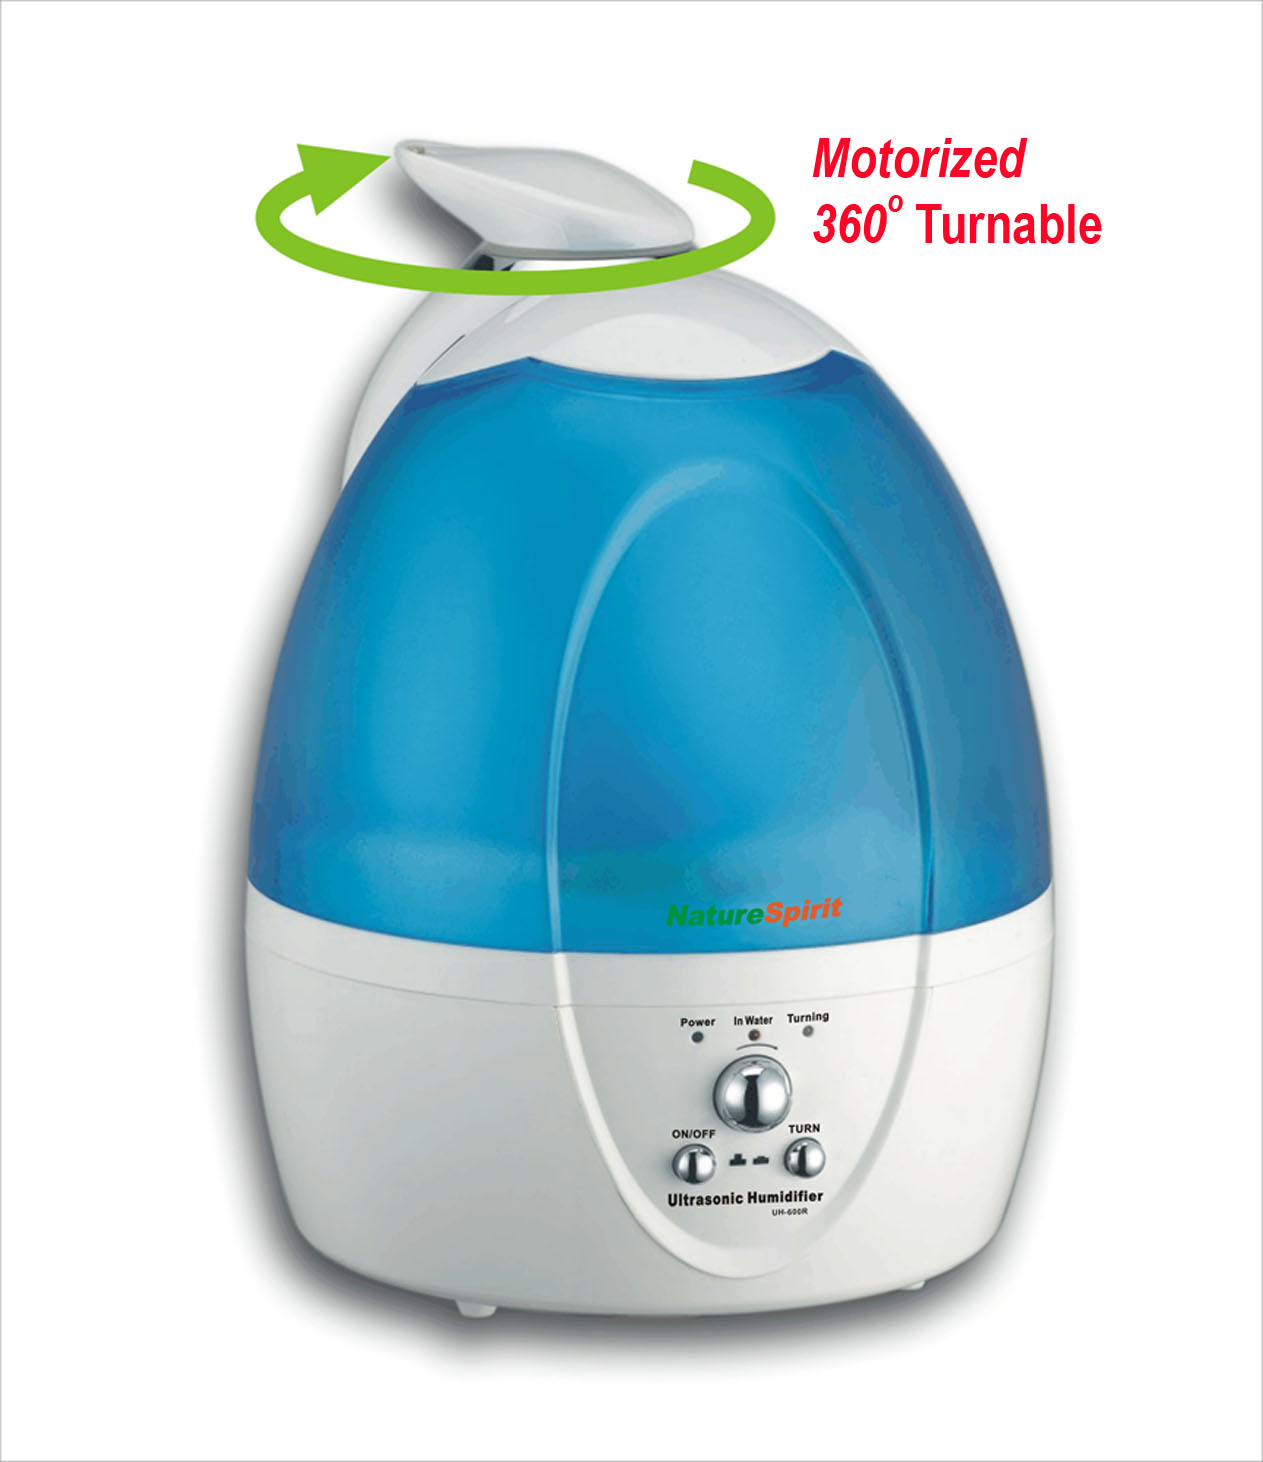 12 Gallon Evaporative Air Whole House Humidifier EA 1201 XKI1028.html #C6051C